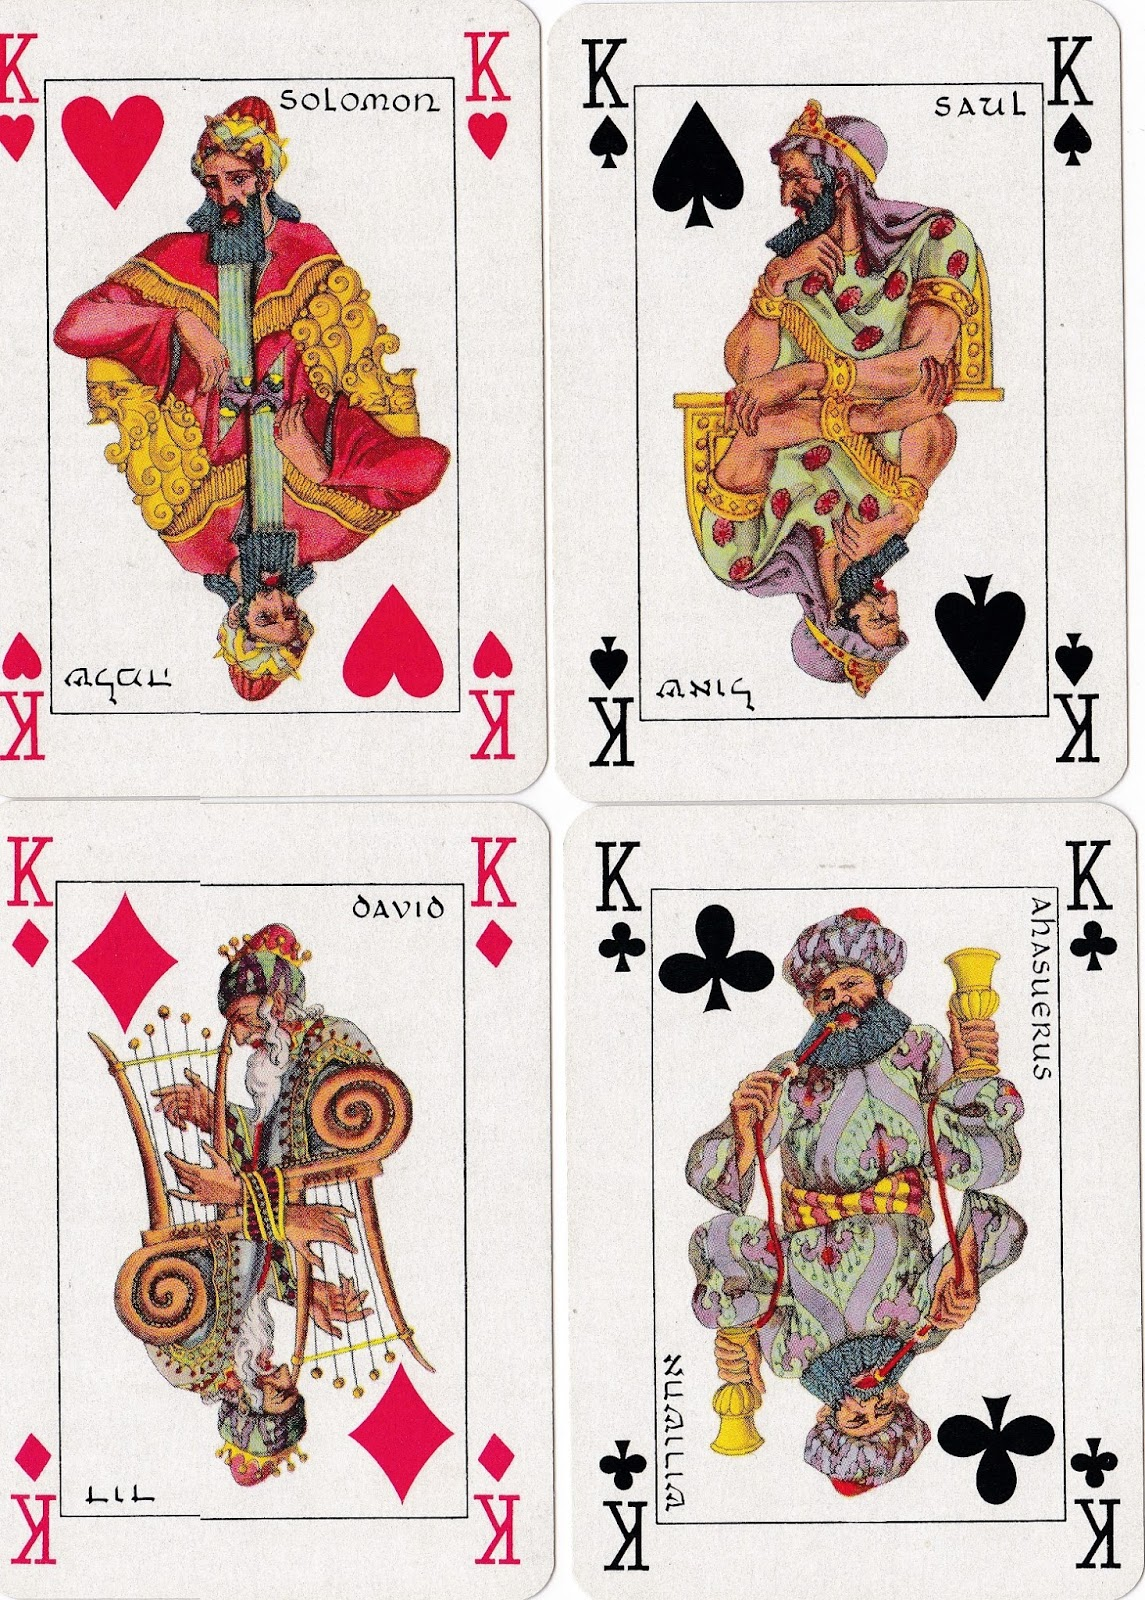 Peter G. Shilston's Blog: Playing Cards, Part 4: Colourful